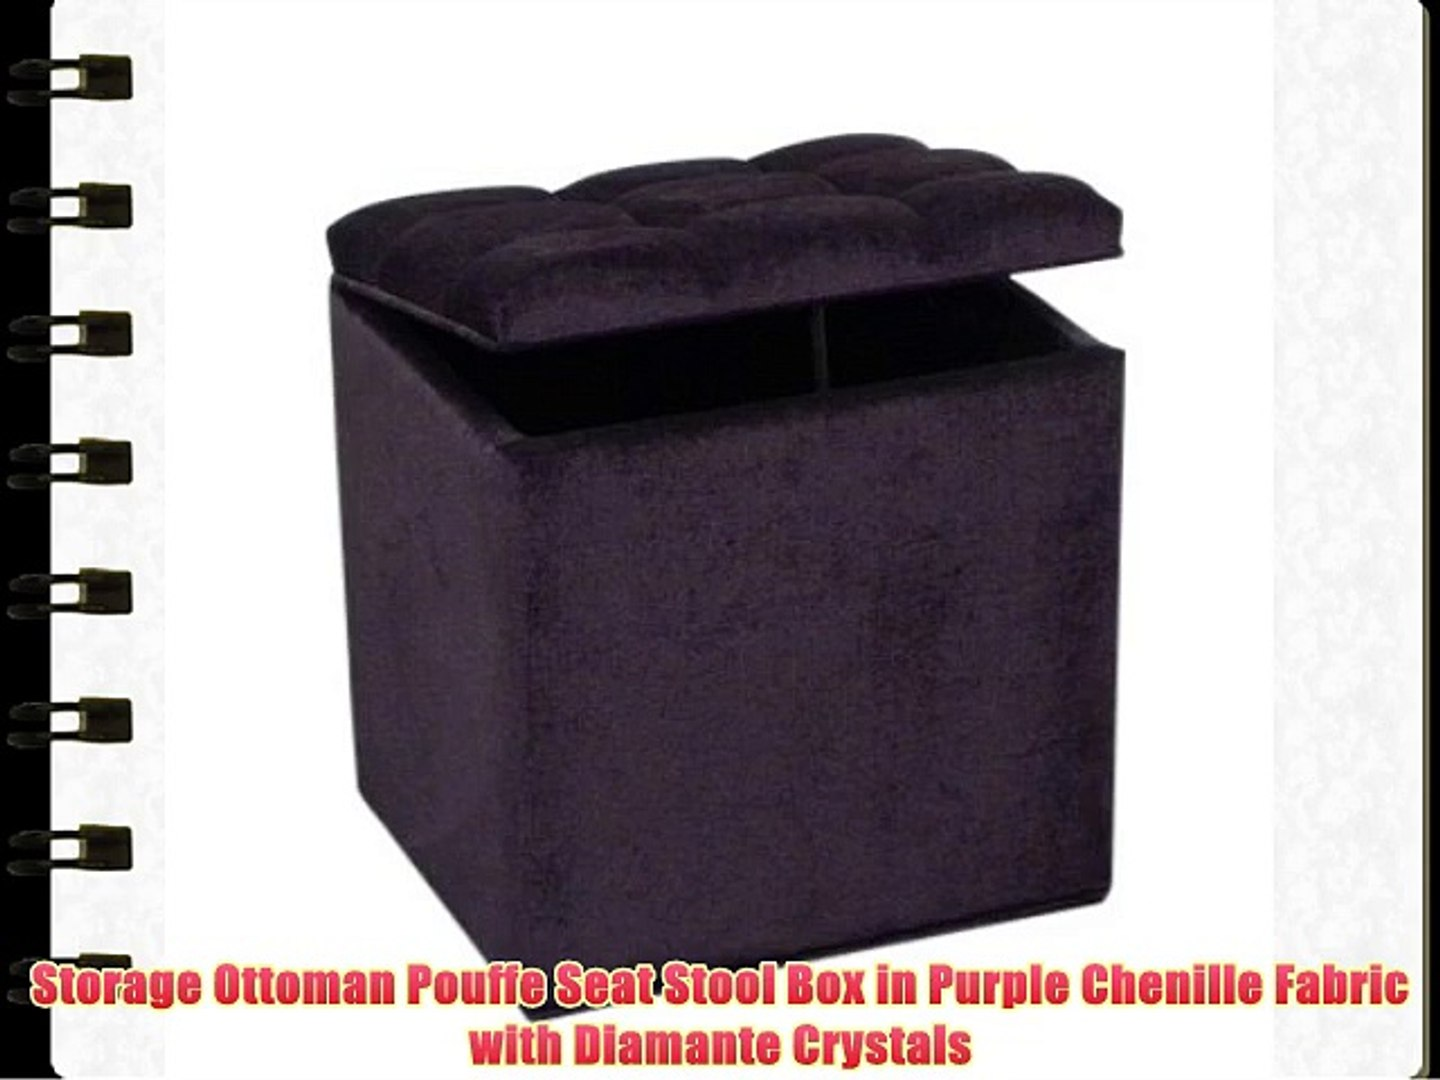 Terrific Storage Ottoman Pouffe Seat Stool Box In Purple Chenille With Diamante Crystals Ocoug Best Dining Table And Chair Ideas Images Ocougorg